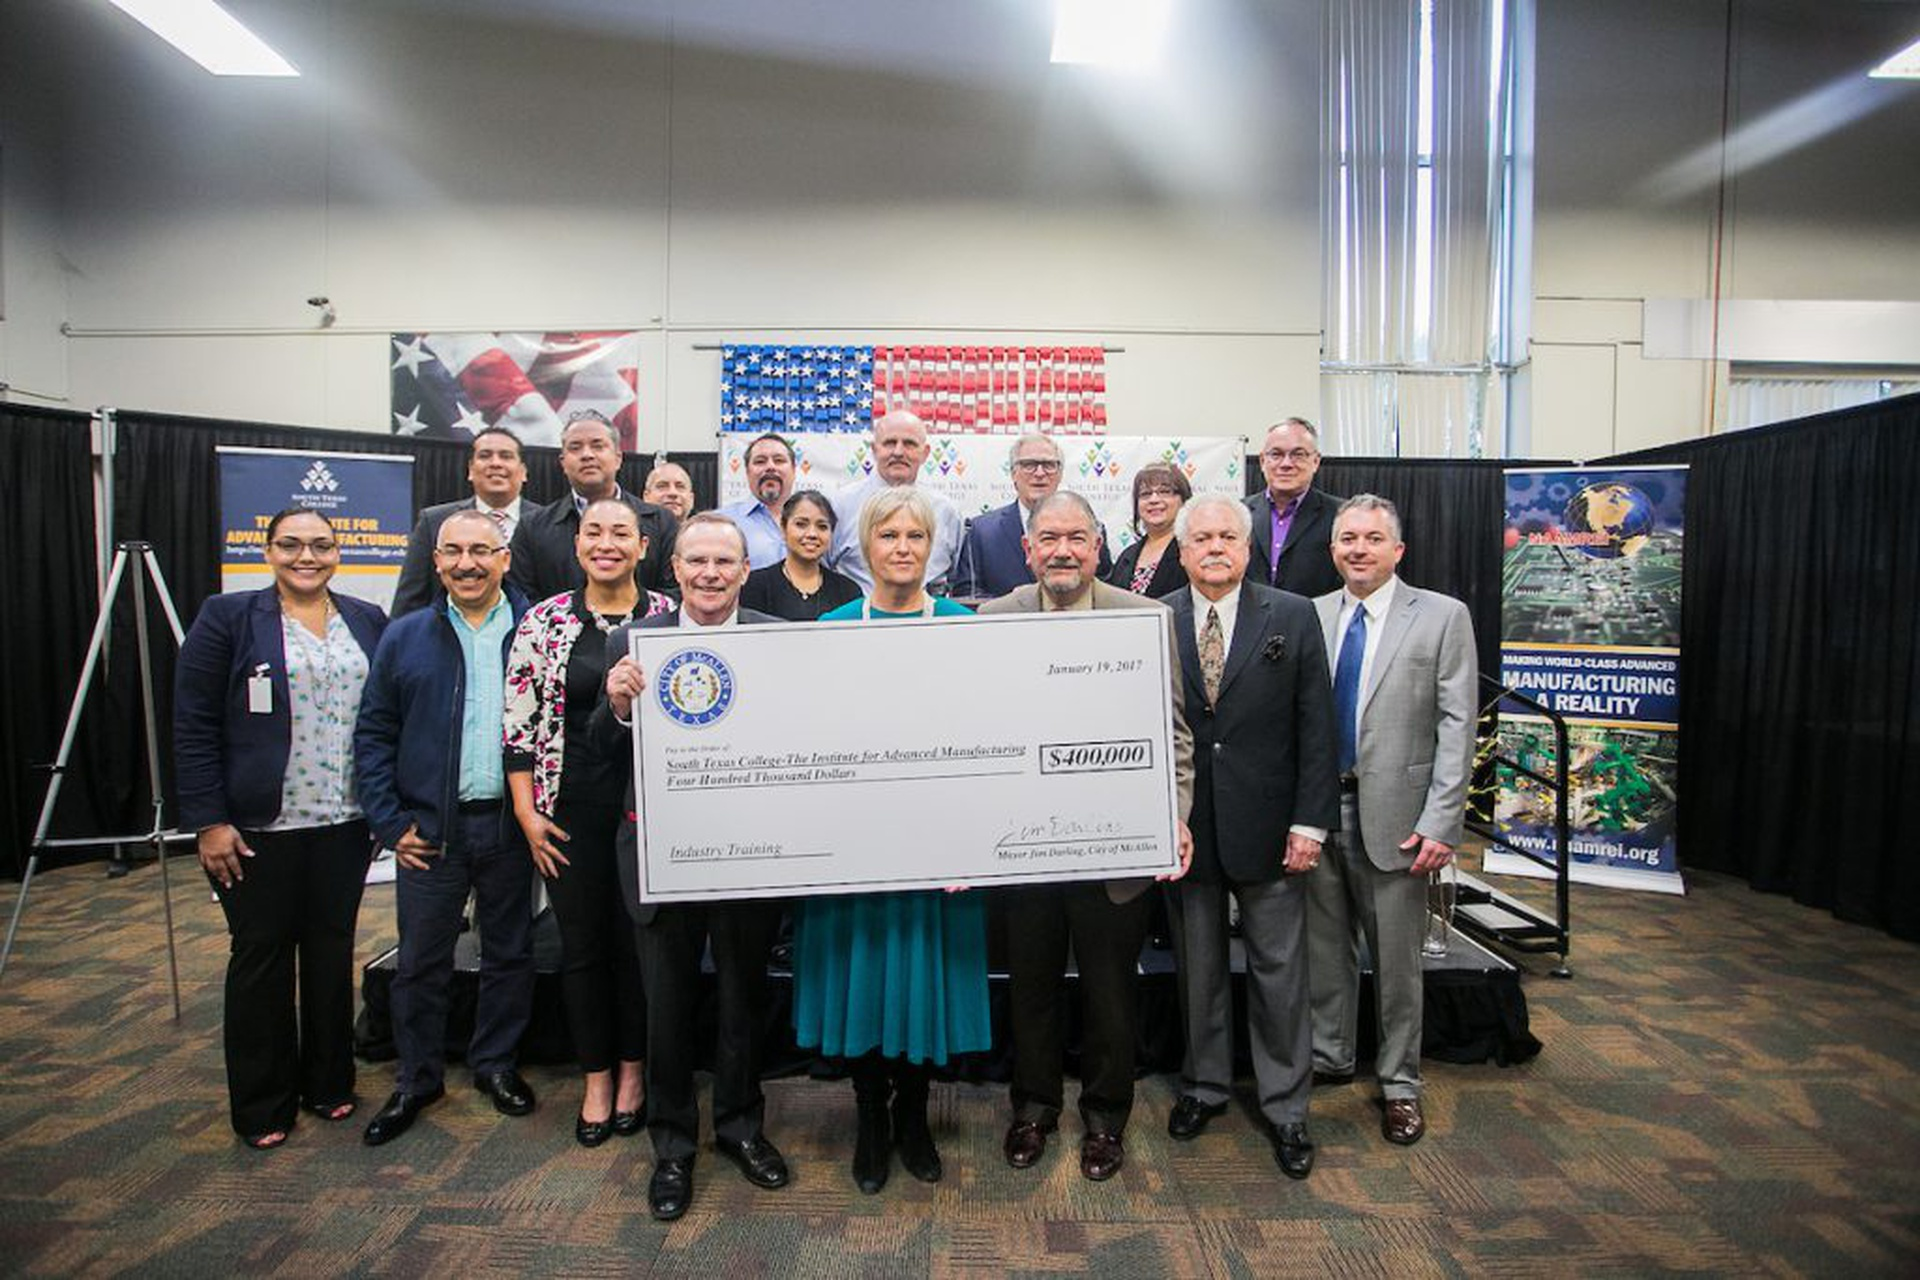 McAllen-Development-Corporation-Fund-Grant-Award-Announcement_01.jpg